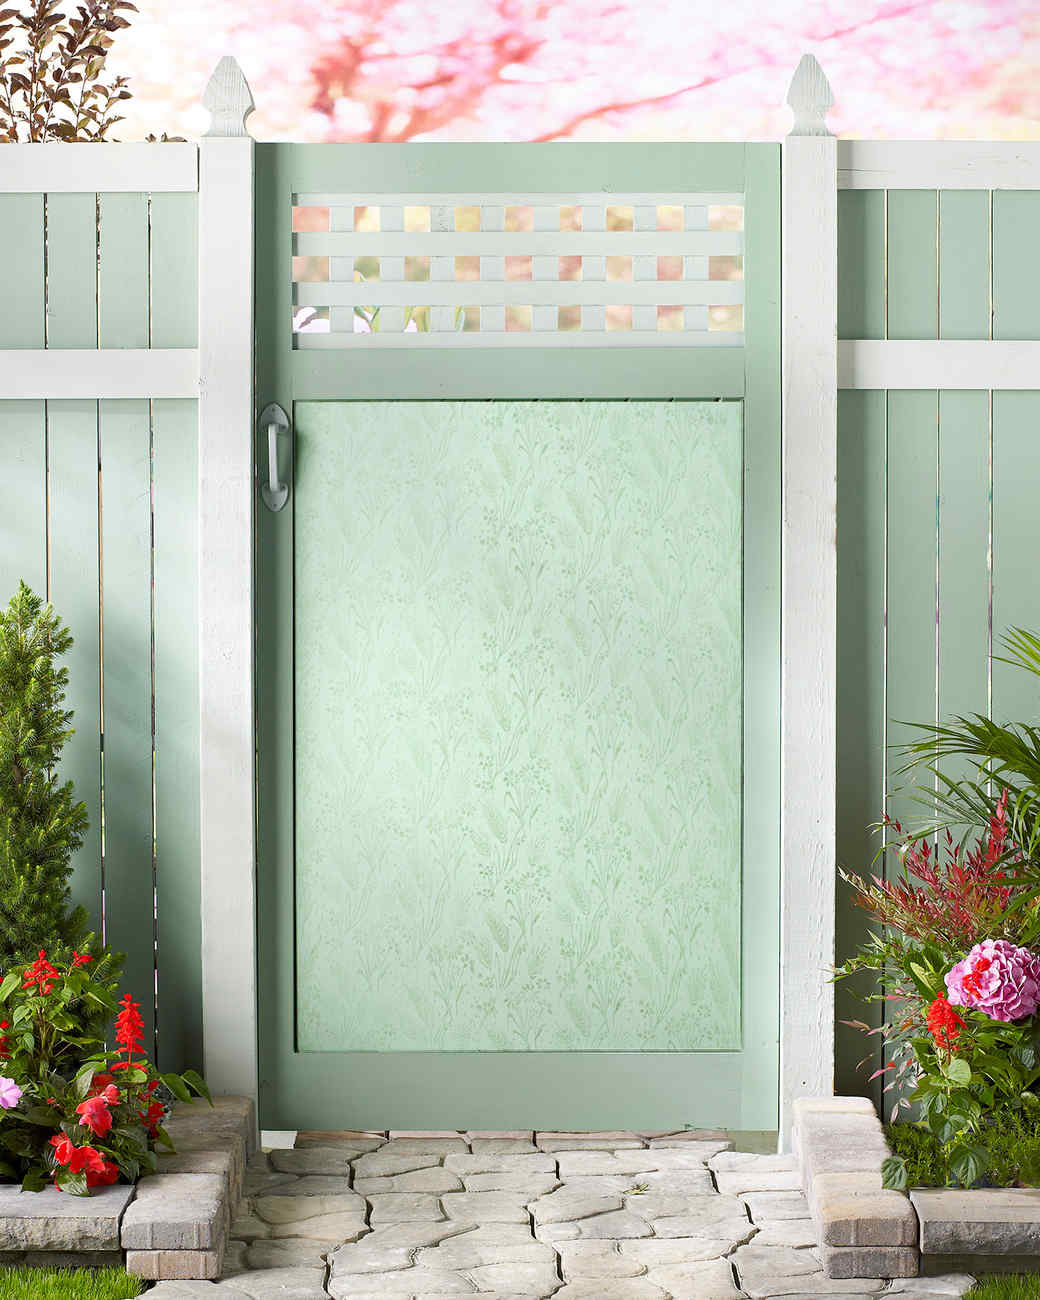 floral stenciled garden gate martha stewart. Black Bedroom Furniture Sets. Home Design Ideas